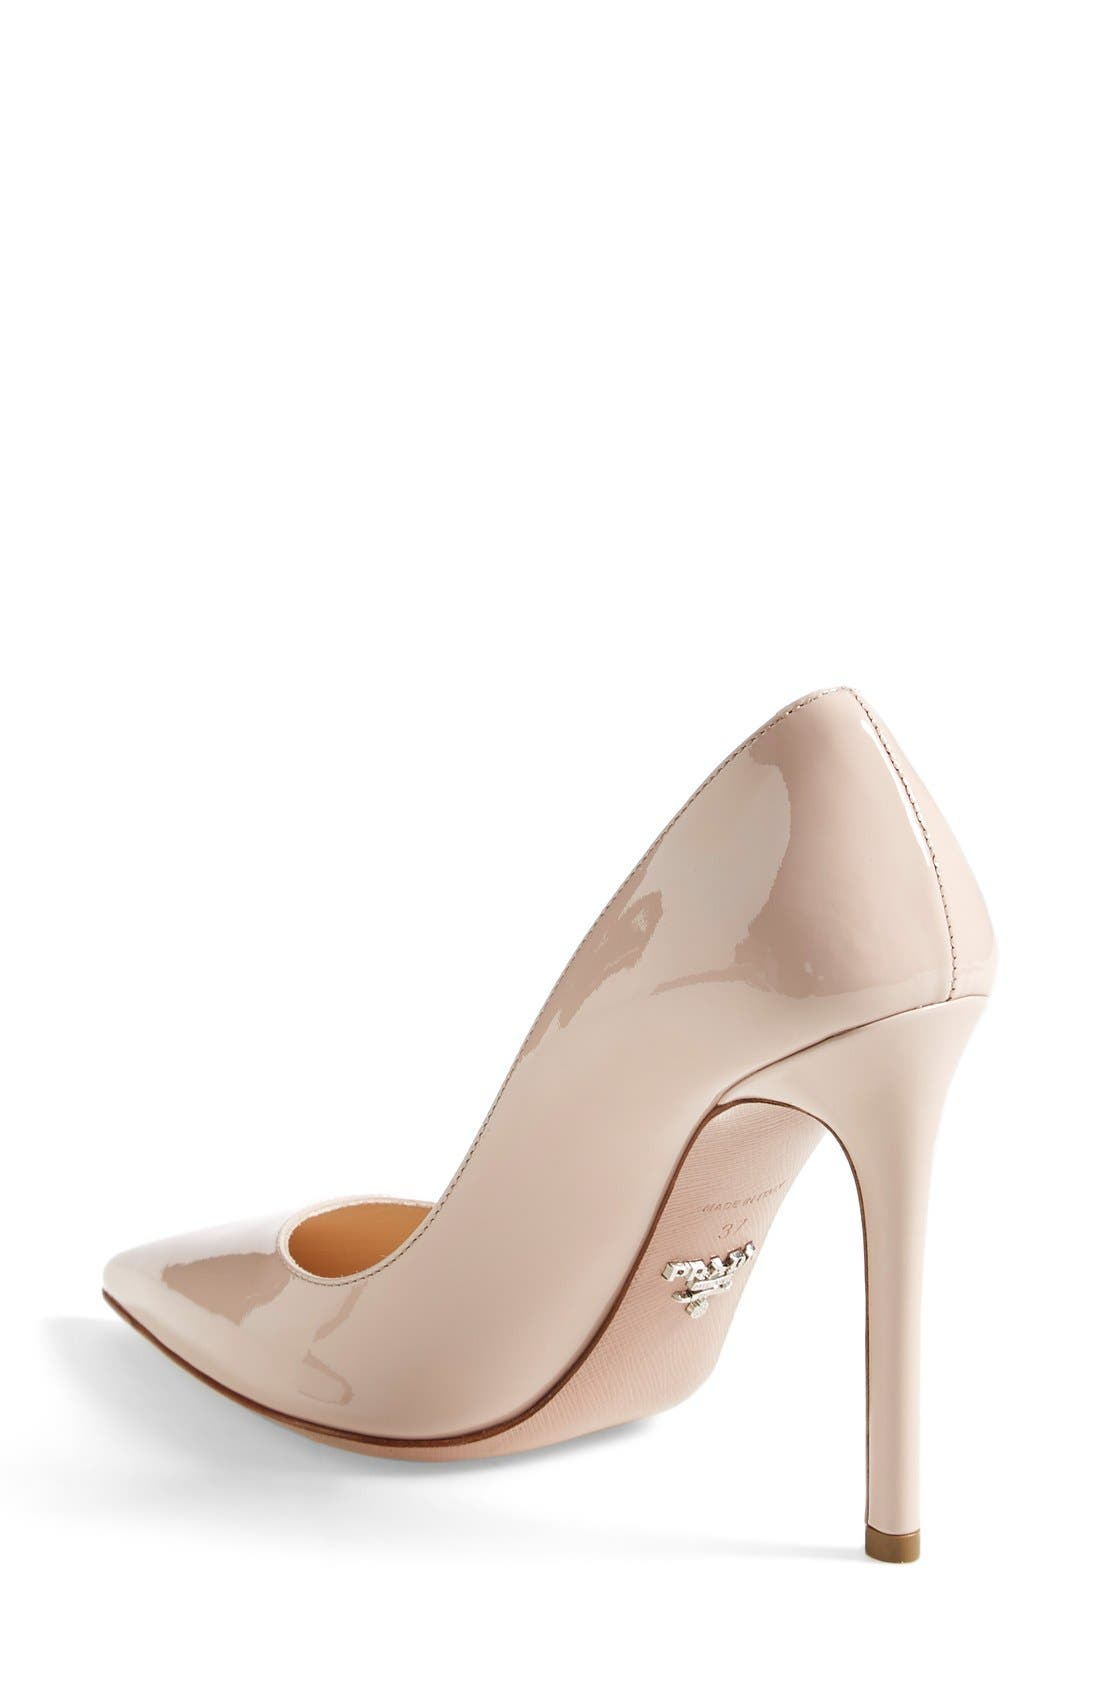 Pointy Toe Pump,                             Alternate thumbnail 2, color,                             Cipria Patent